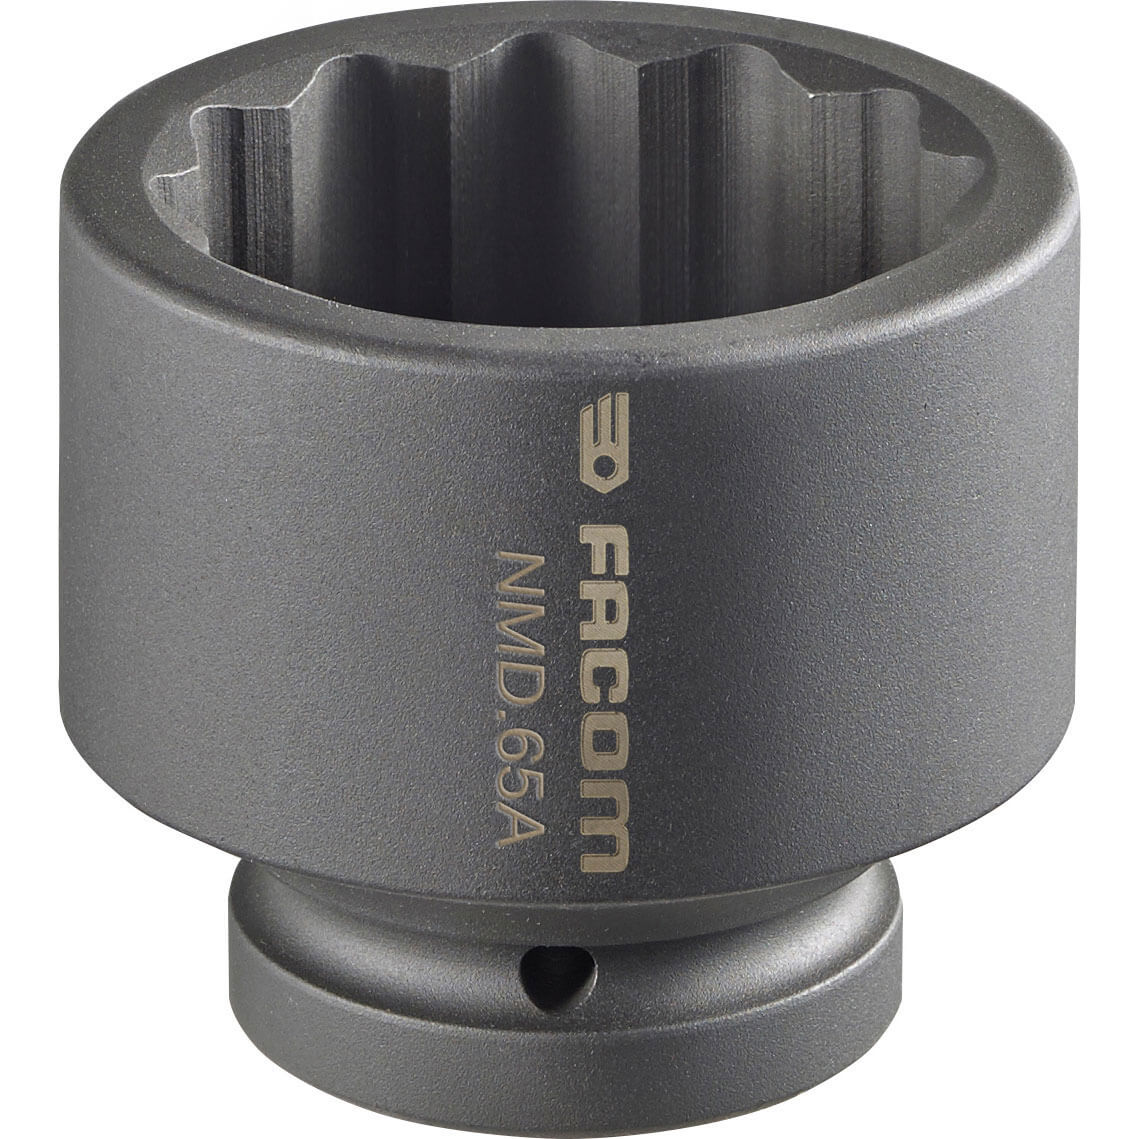 Click to view product details and reviews for Facom Nmd65a 1 Drive Bi Hexagon Impact Socket Metric 1 65mm.